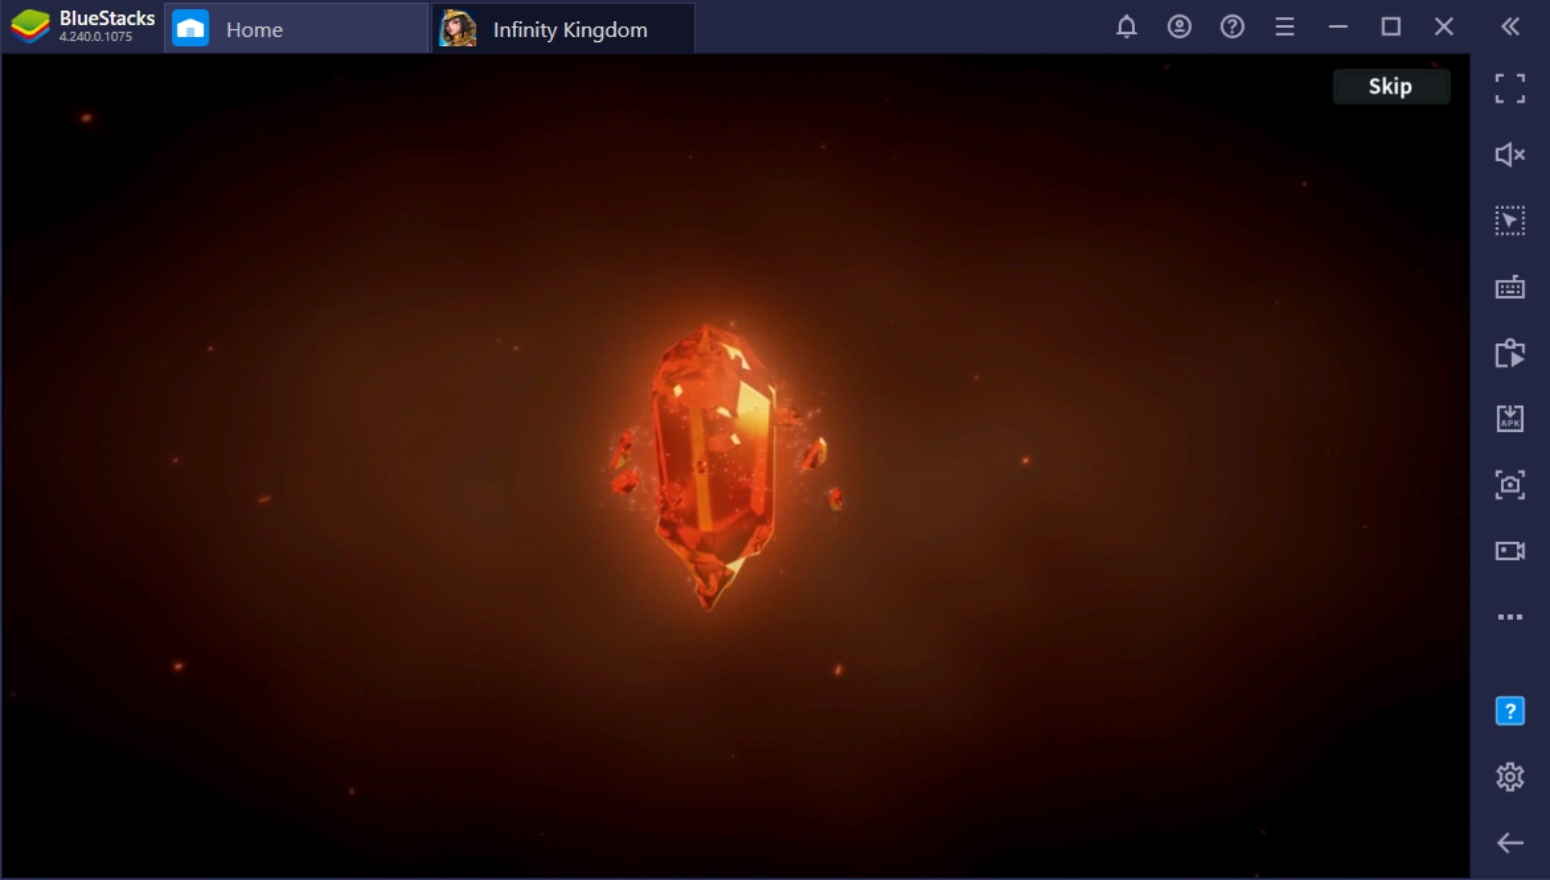 How To Play Infinity Kingdom On PC With BlueStacks